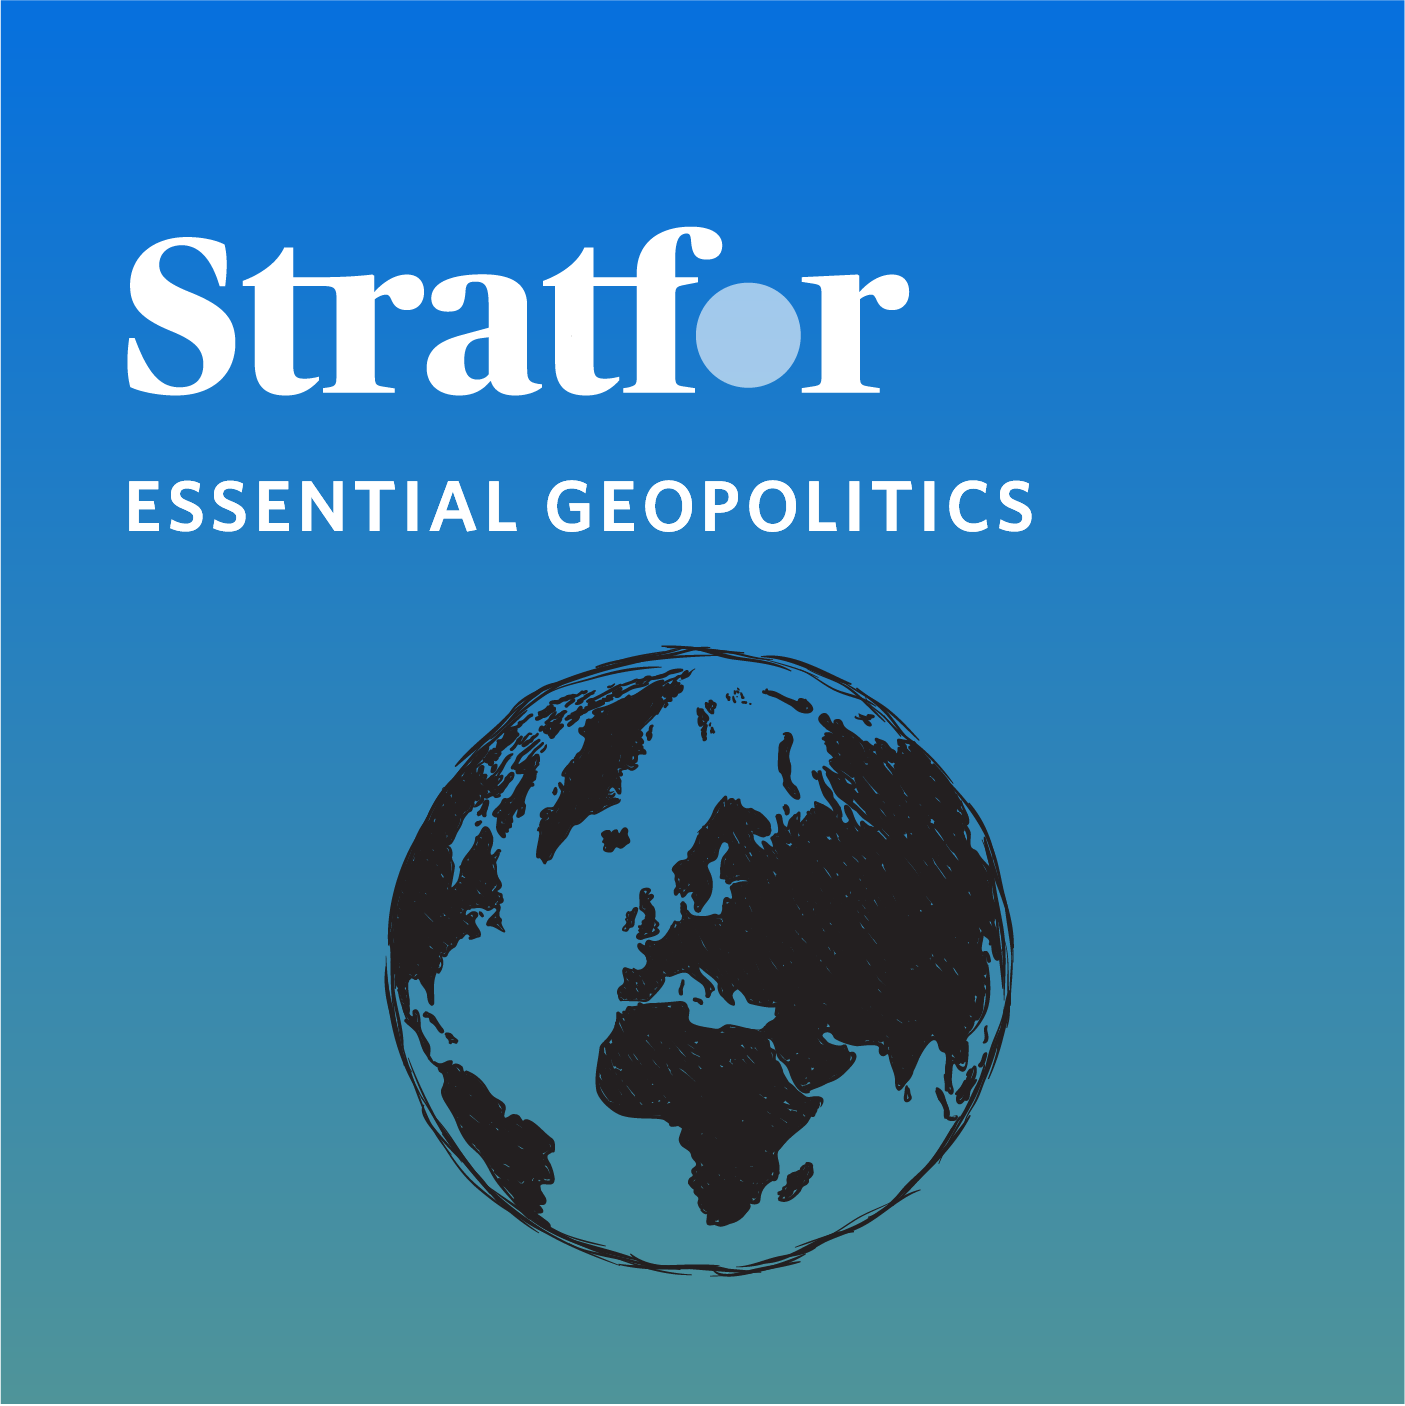 Essential Geopolitics: At the Intersection of Empires. The South Caucasus Gets Squeezed